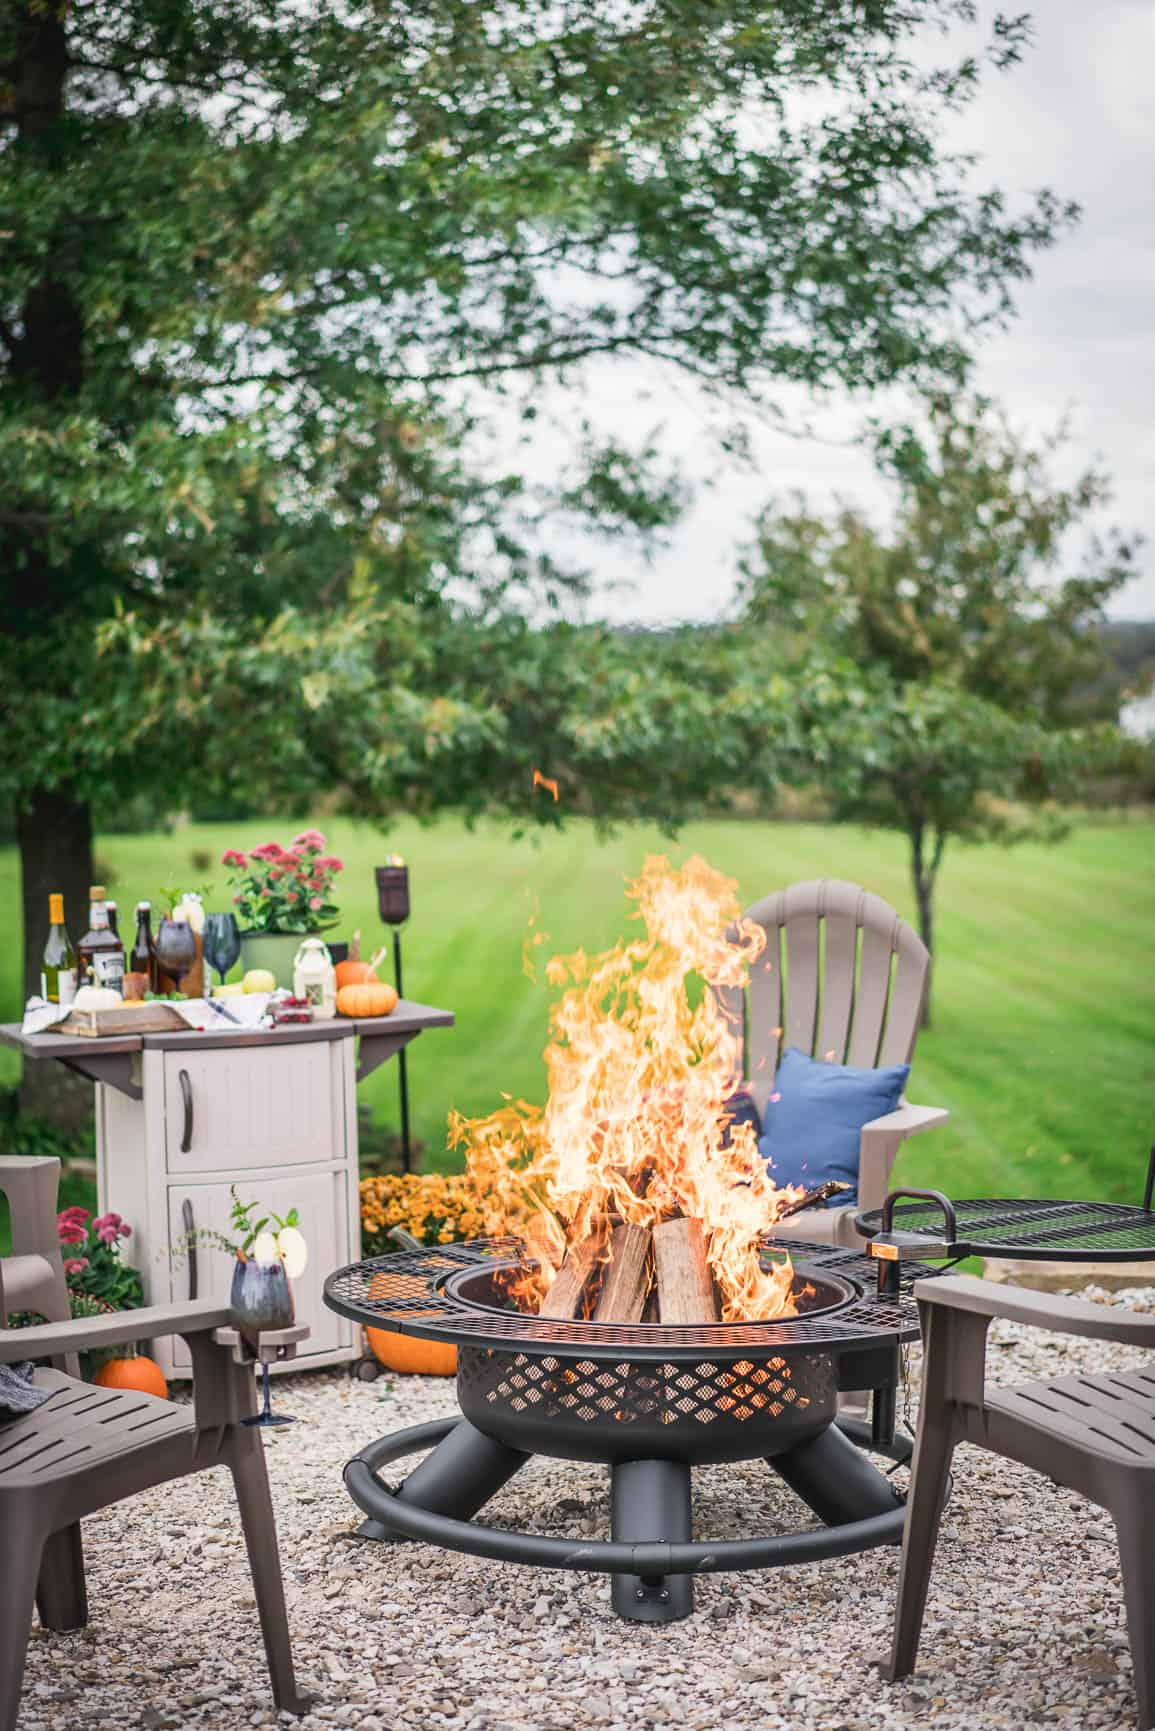 How To Set Up The Perfect Backyard Fire Pit!